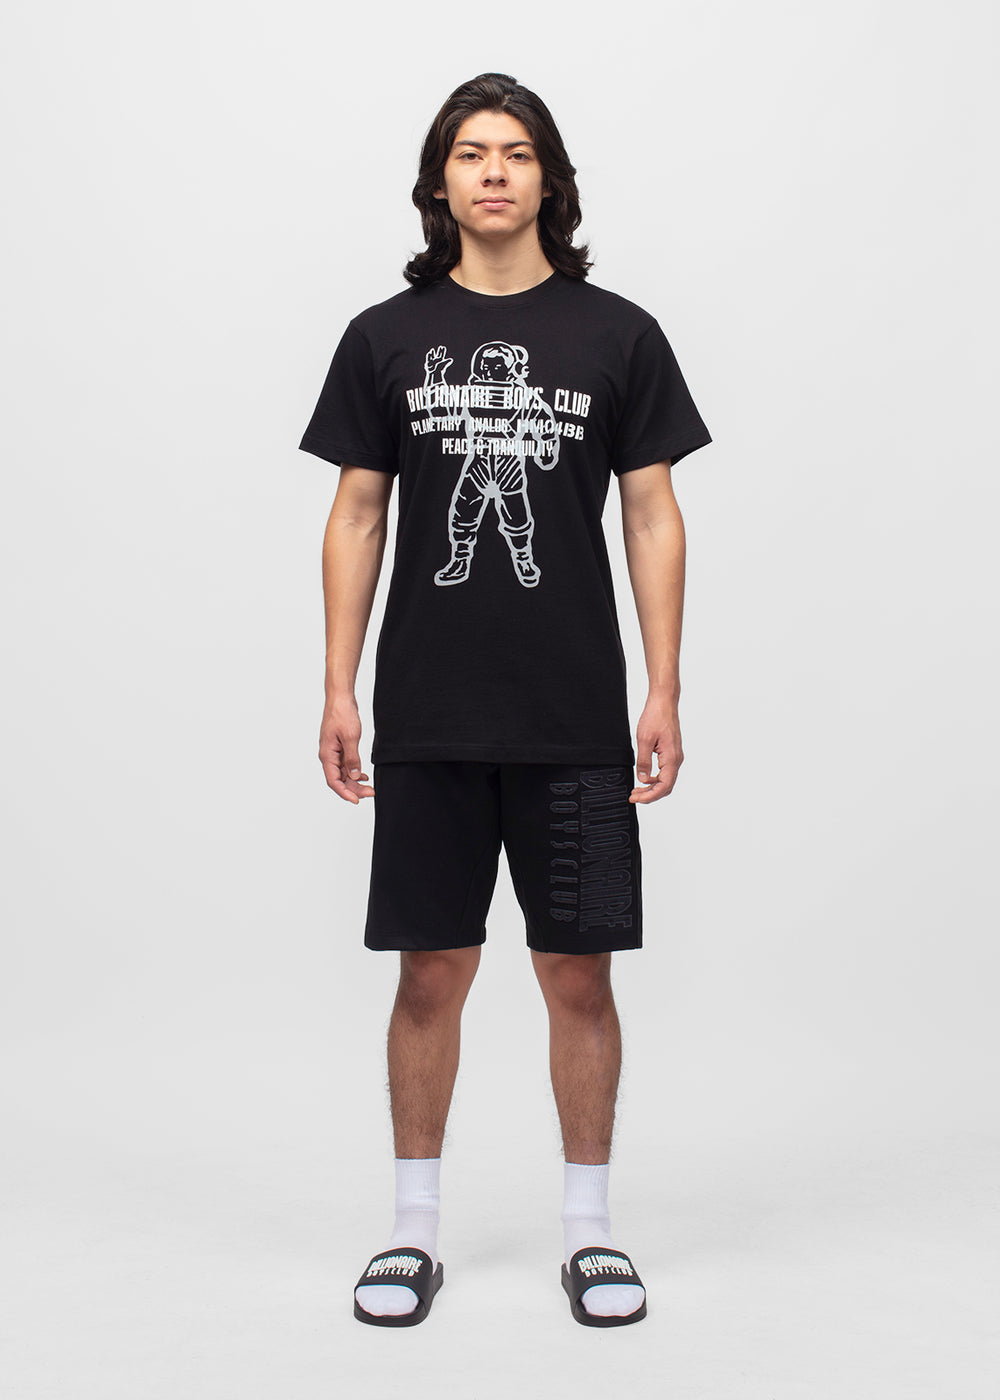 billionaire-boys-club-visitor-ss-tee-891-6204-blk-blk-4